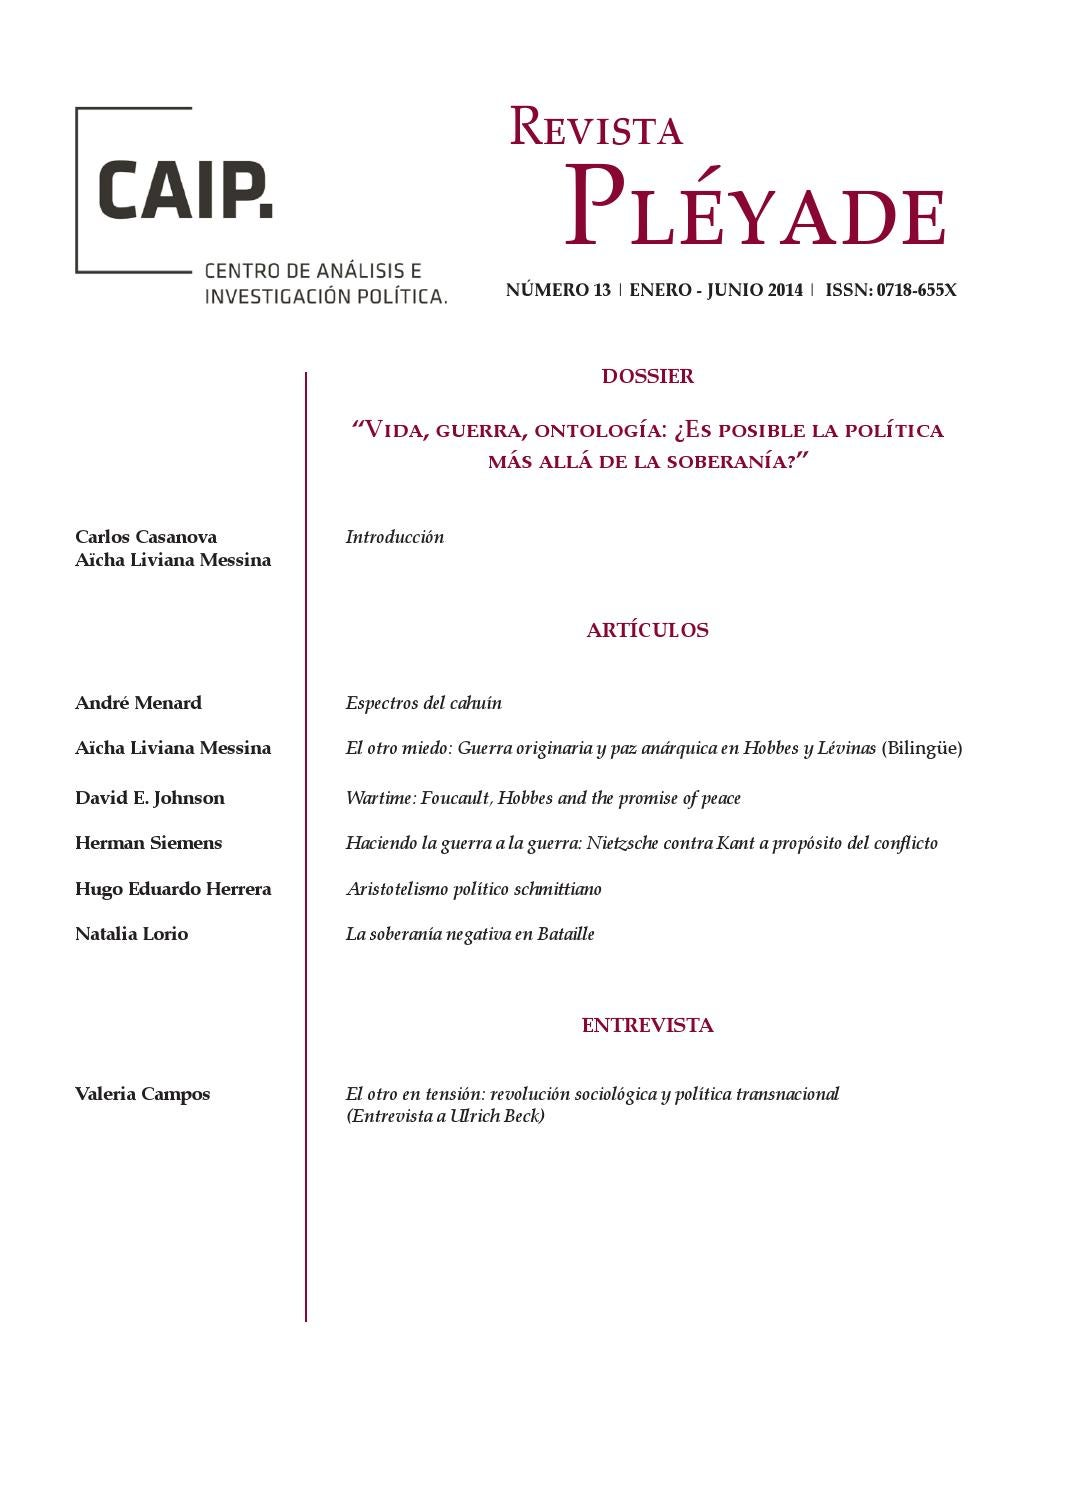 Revista Pléyade Nº 13 by Revista Pléyade - issuu